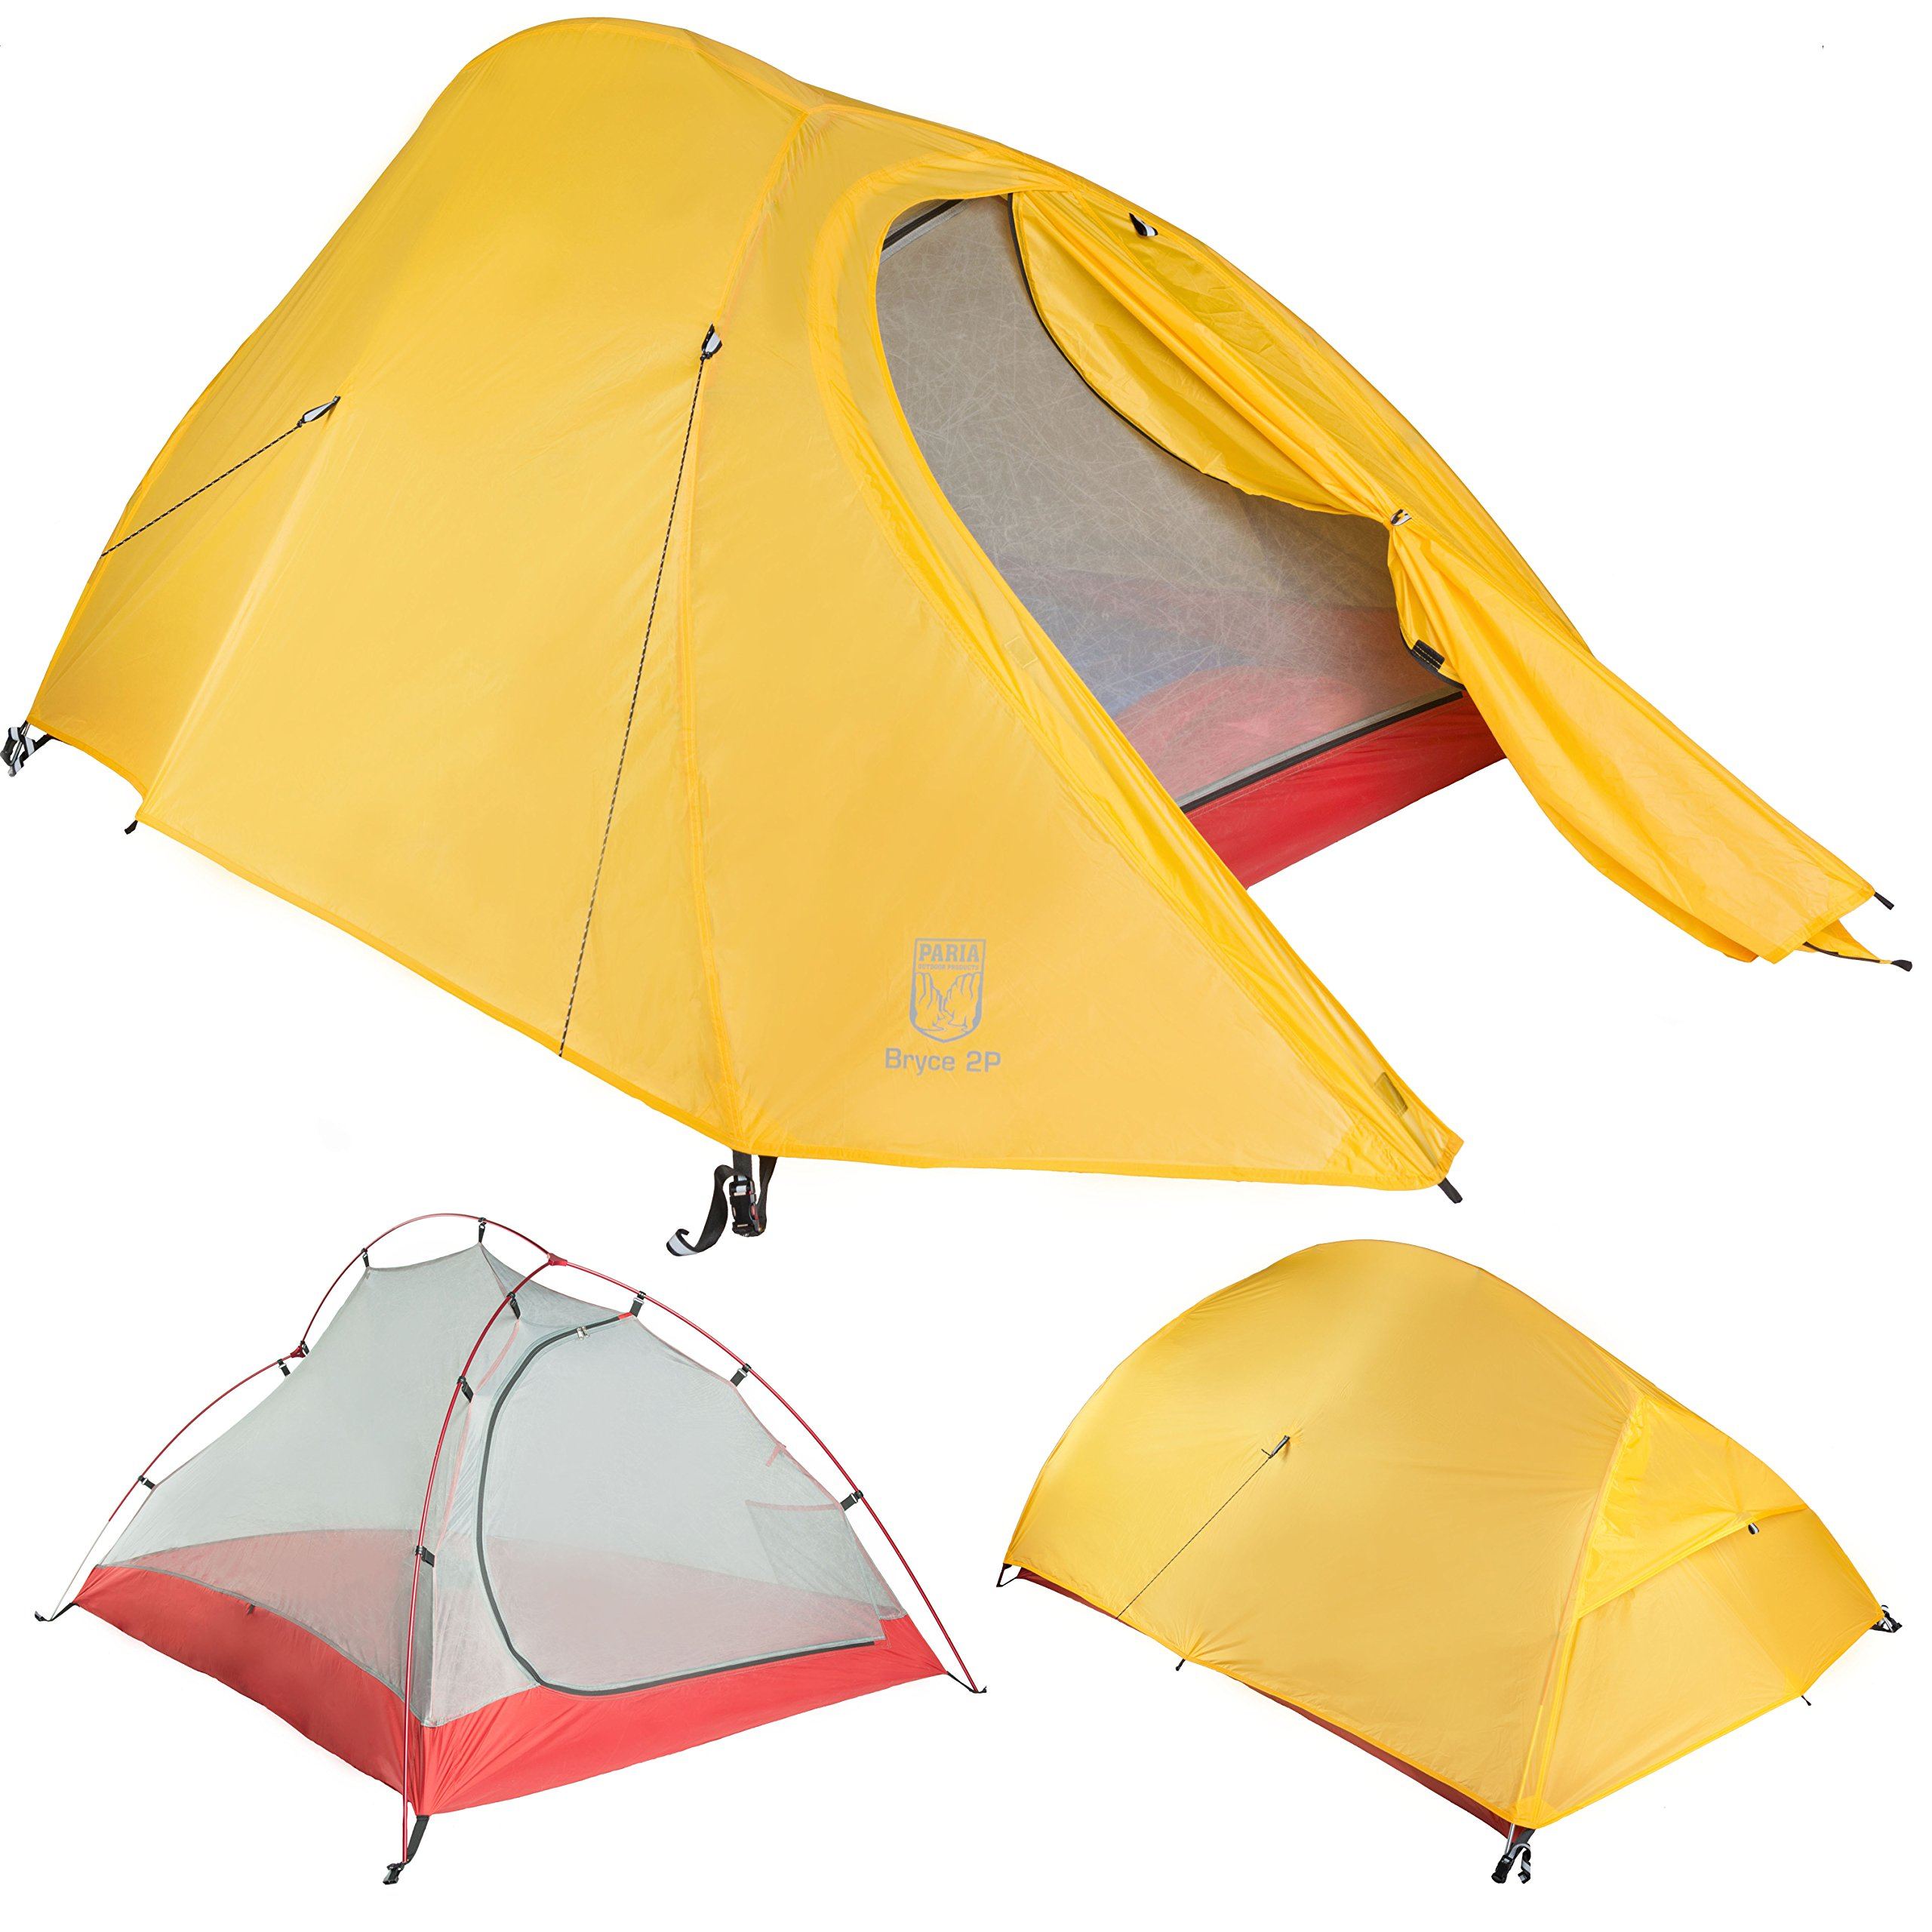 Bryce 2P Two Person Ultralight Tent and Footprint - Perfect for Backpacking, Kayaking, Camping and Bikepacking by Paria Outdoor Products (Image #1)